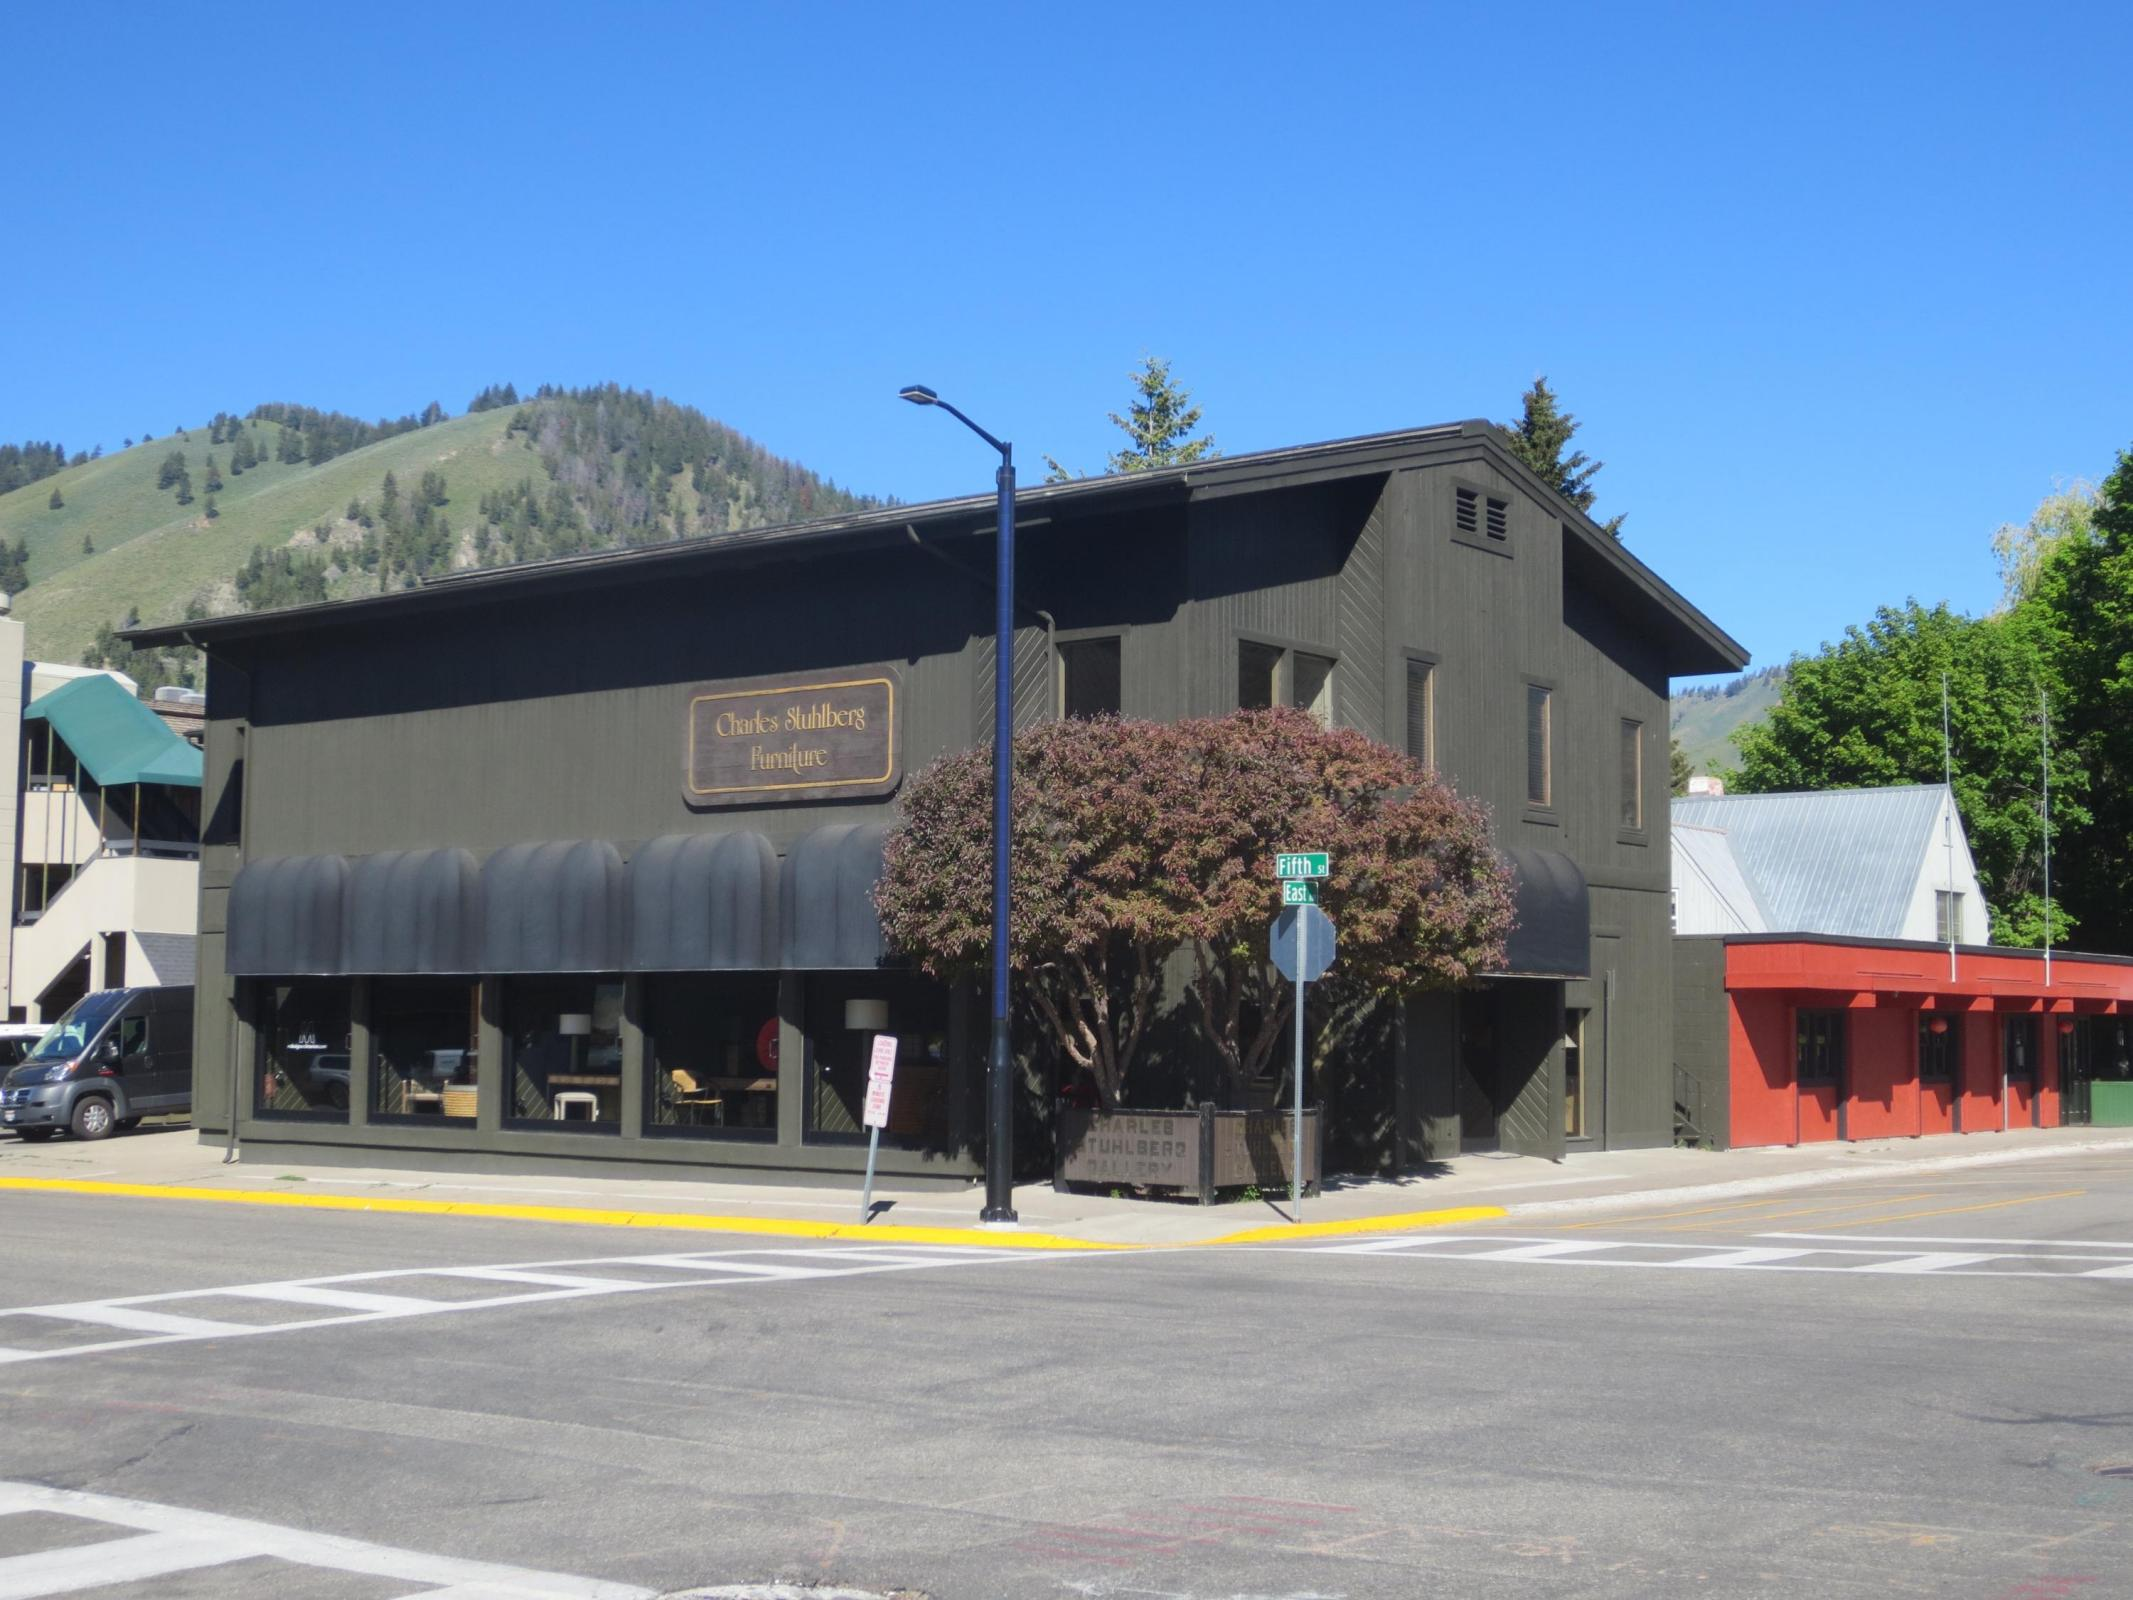 The Stuhlberg building sold in Ketchum, Idaho